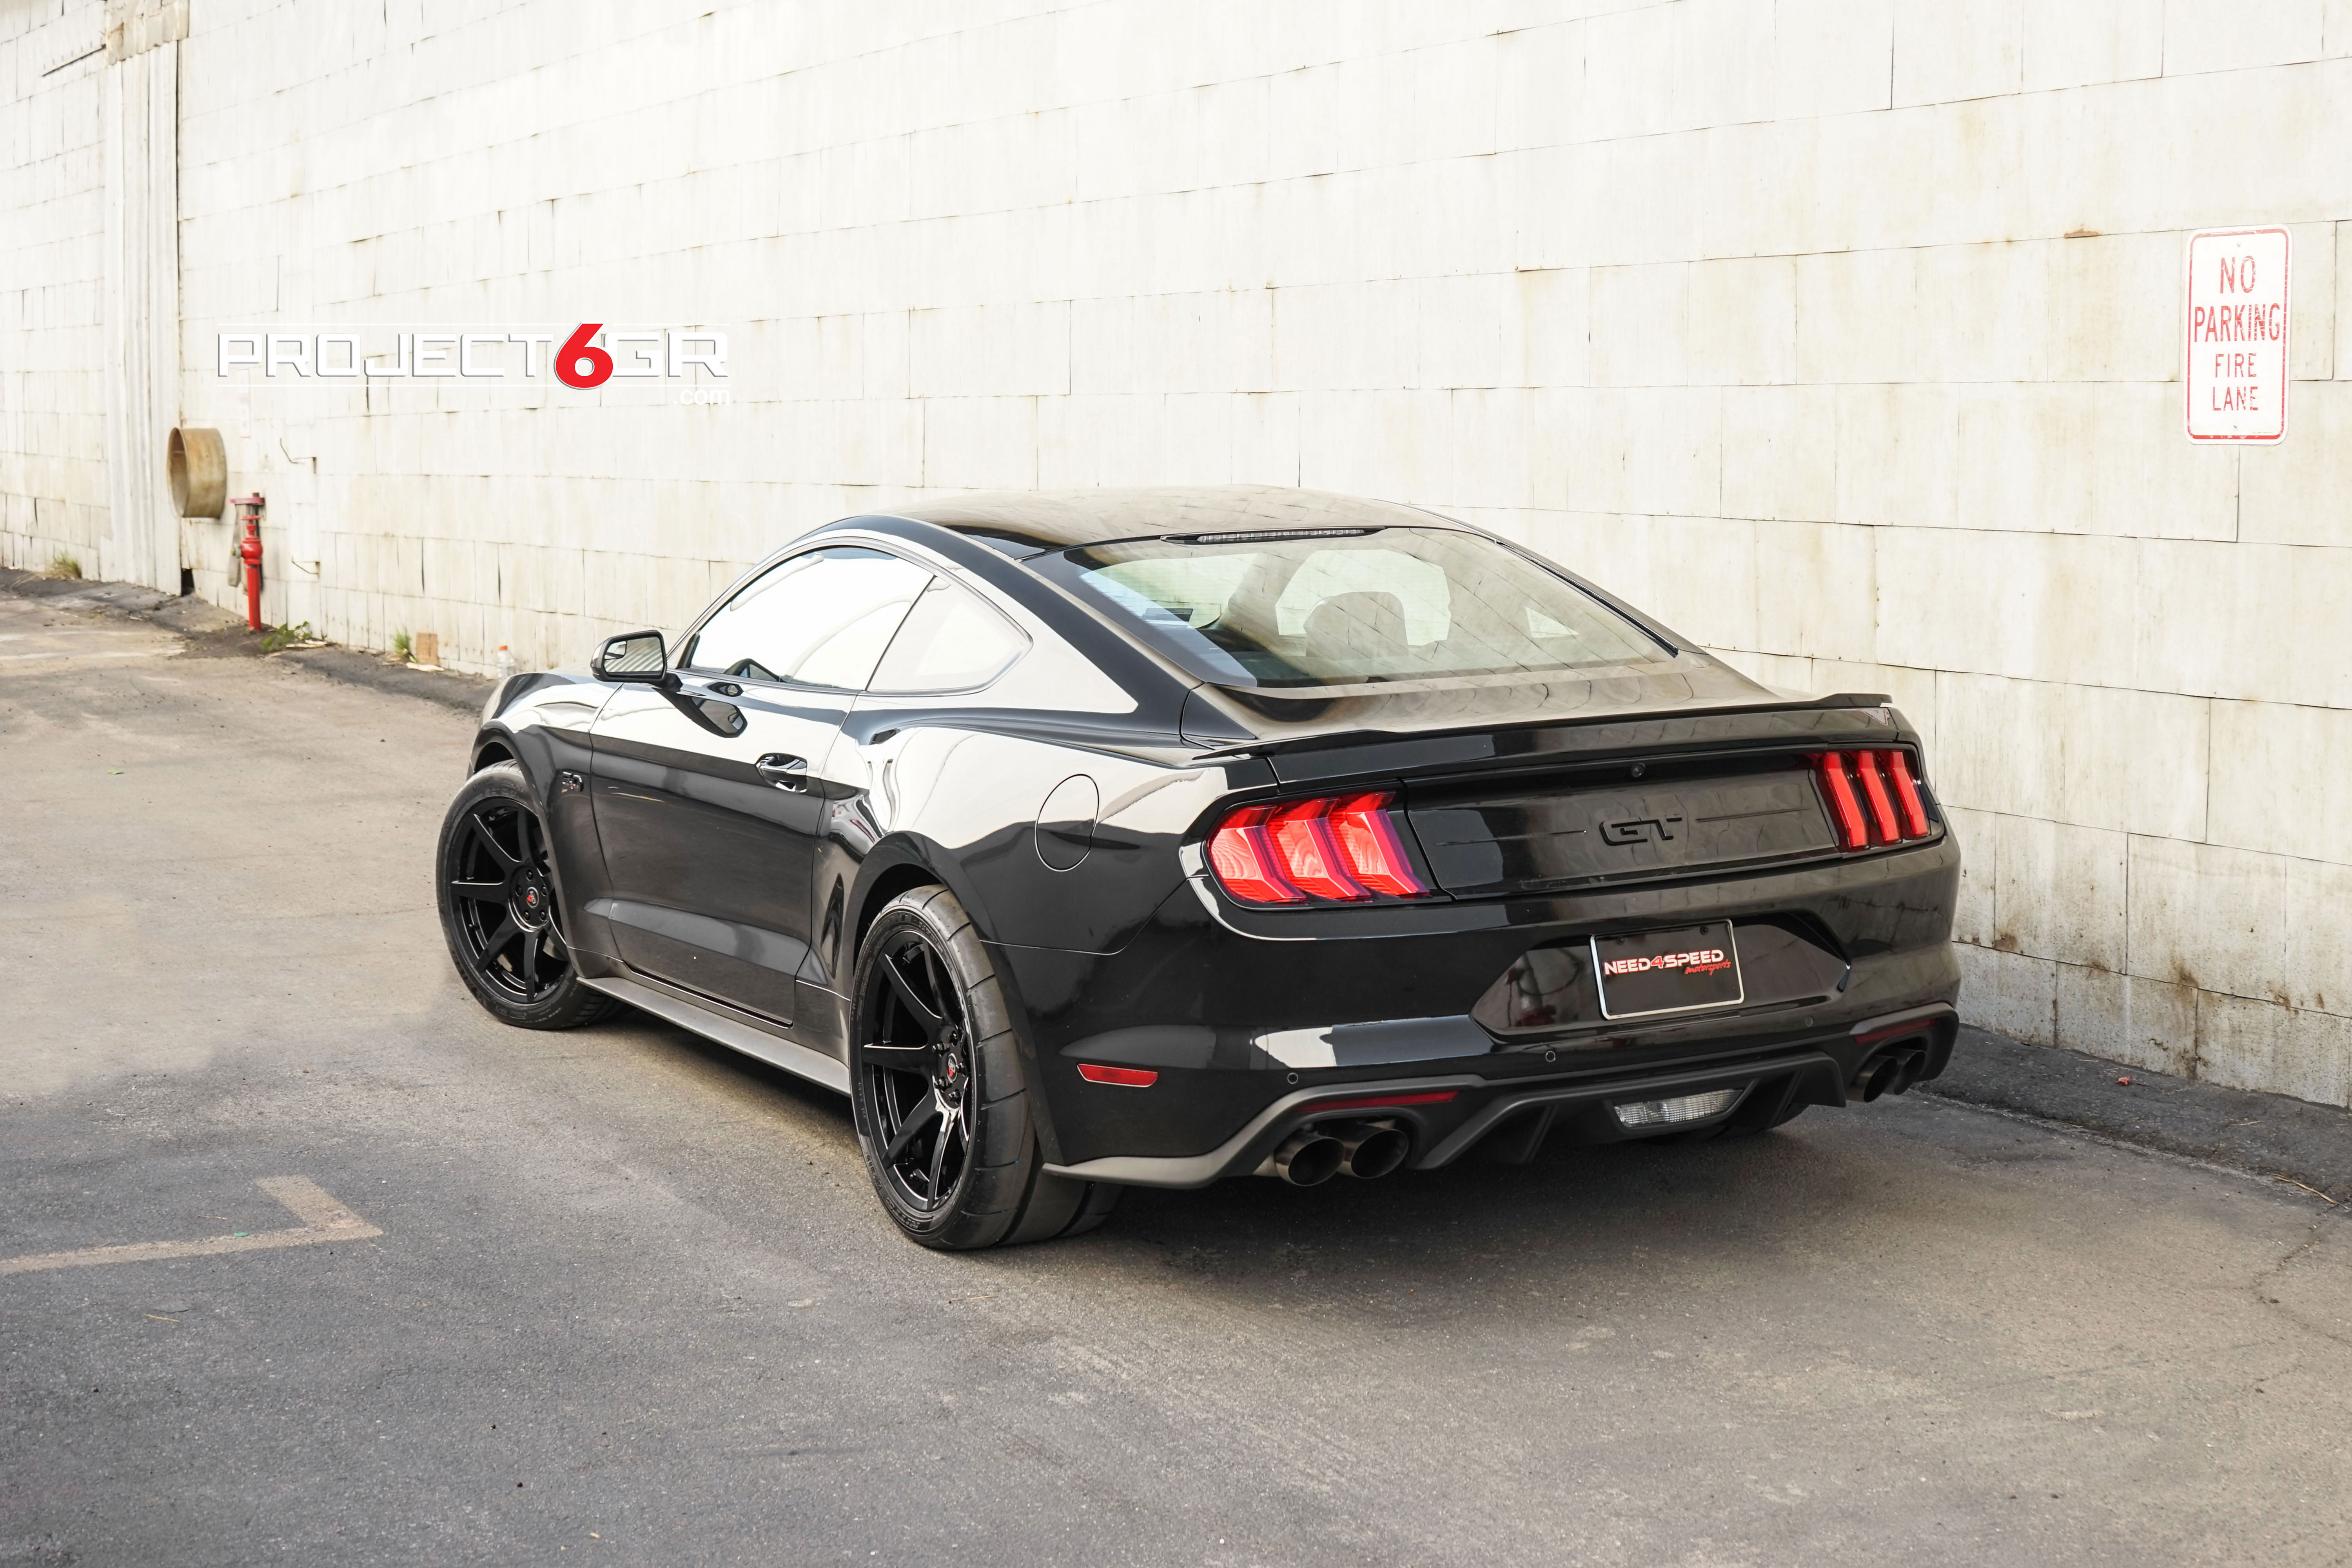 General At Tires >> World's First 2018 Ford Mustang GT sporting Project 6GR 7-Seven 345's Rear tires! - Project 6GR